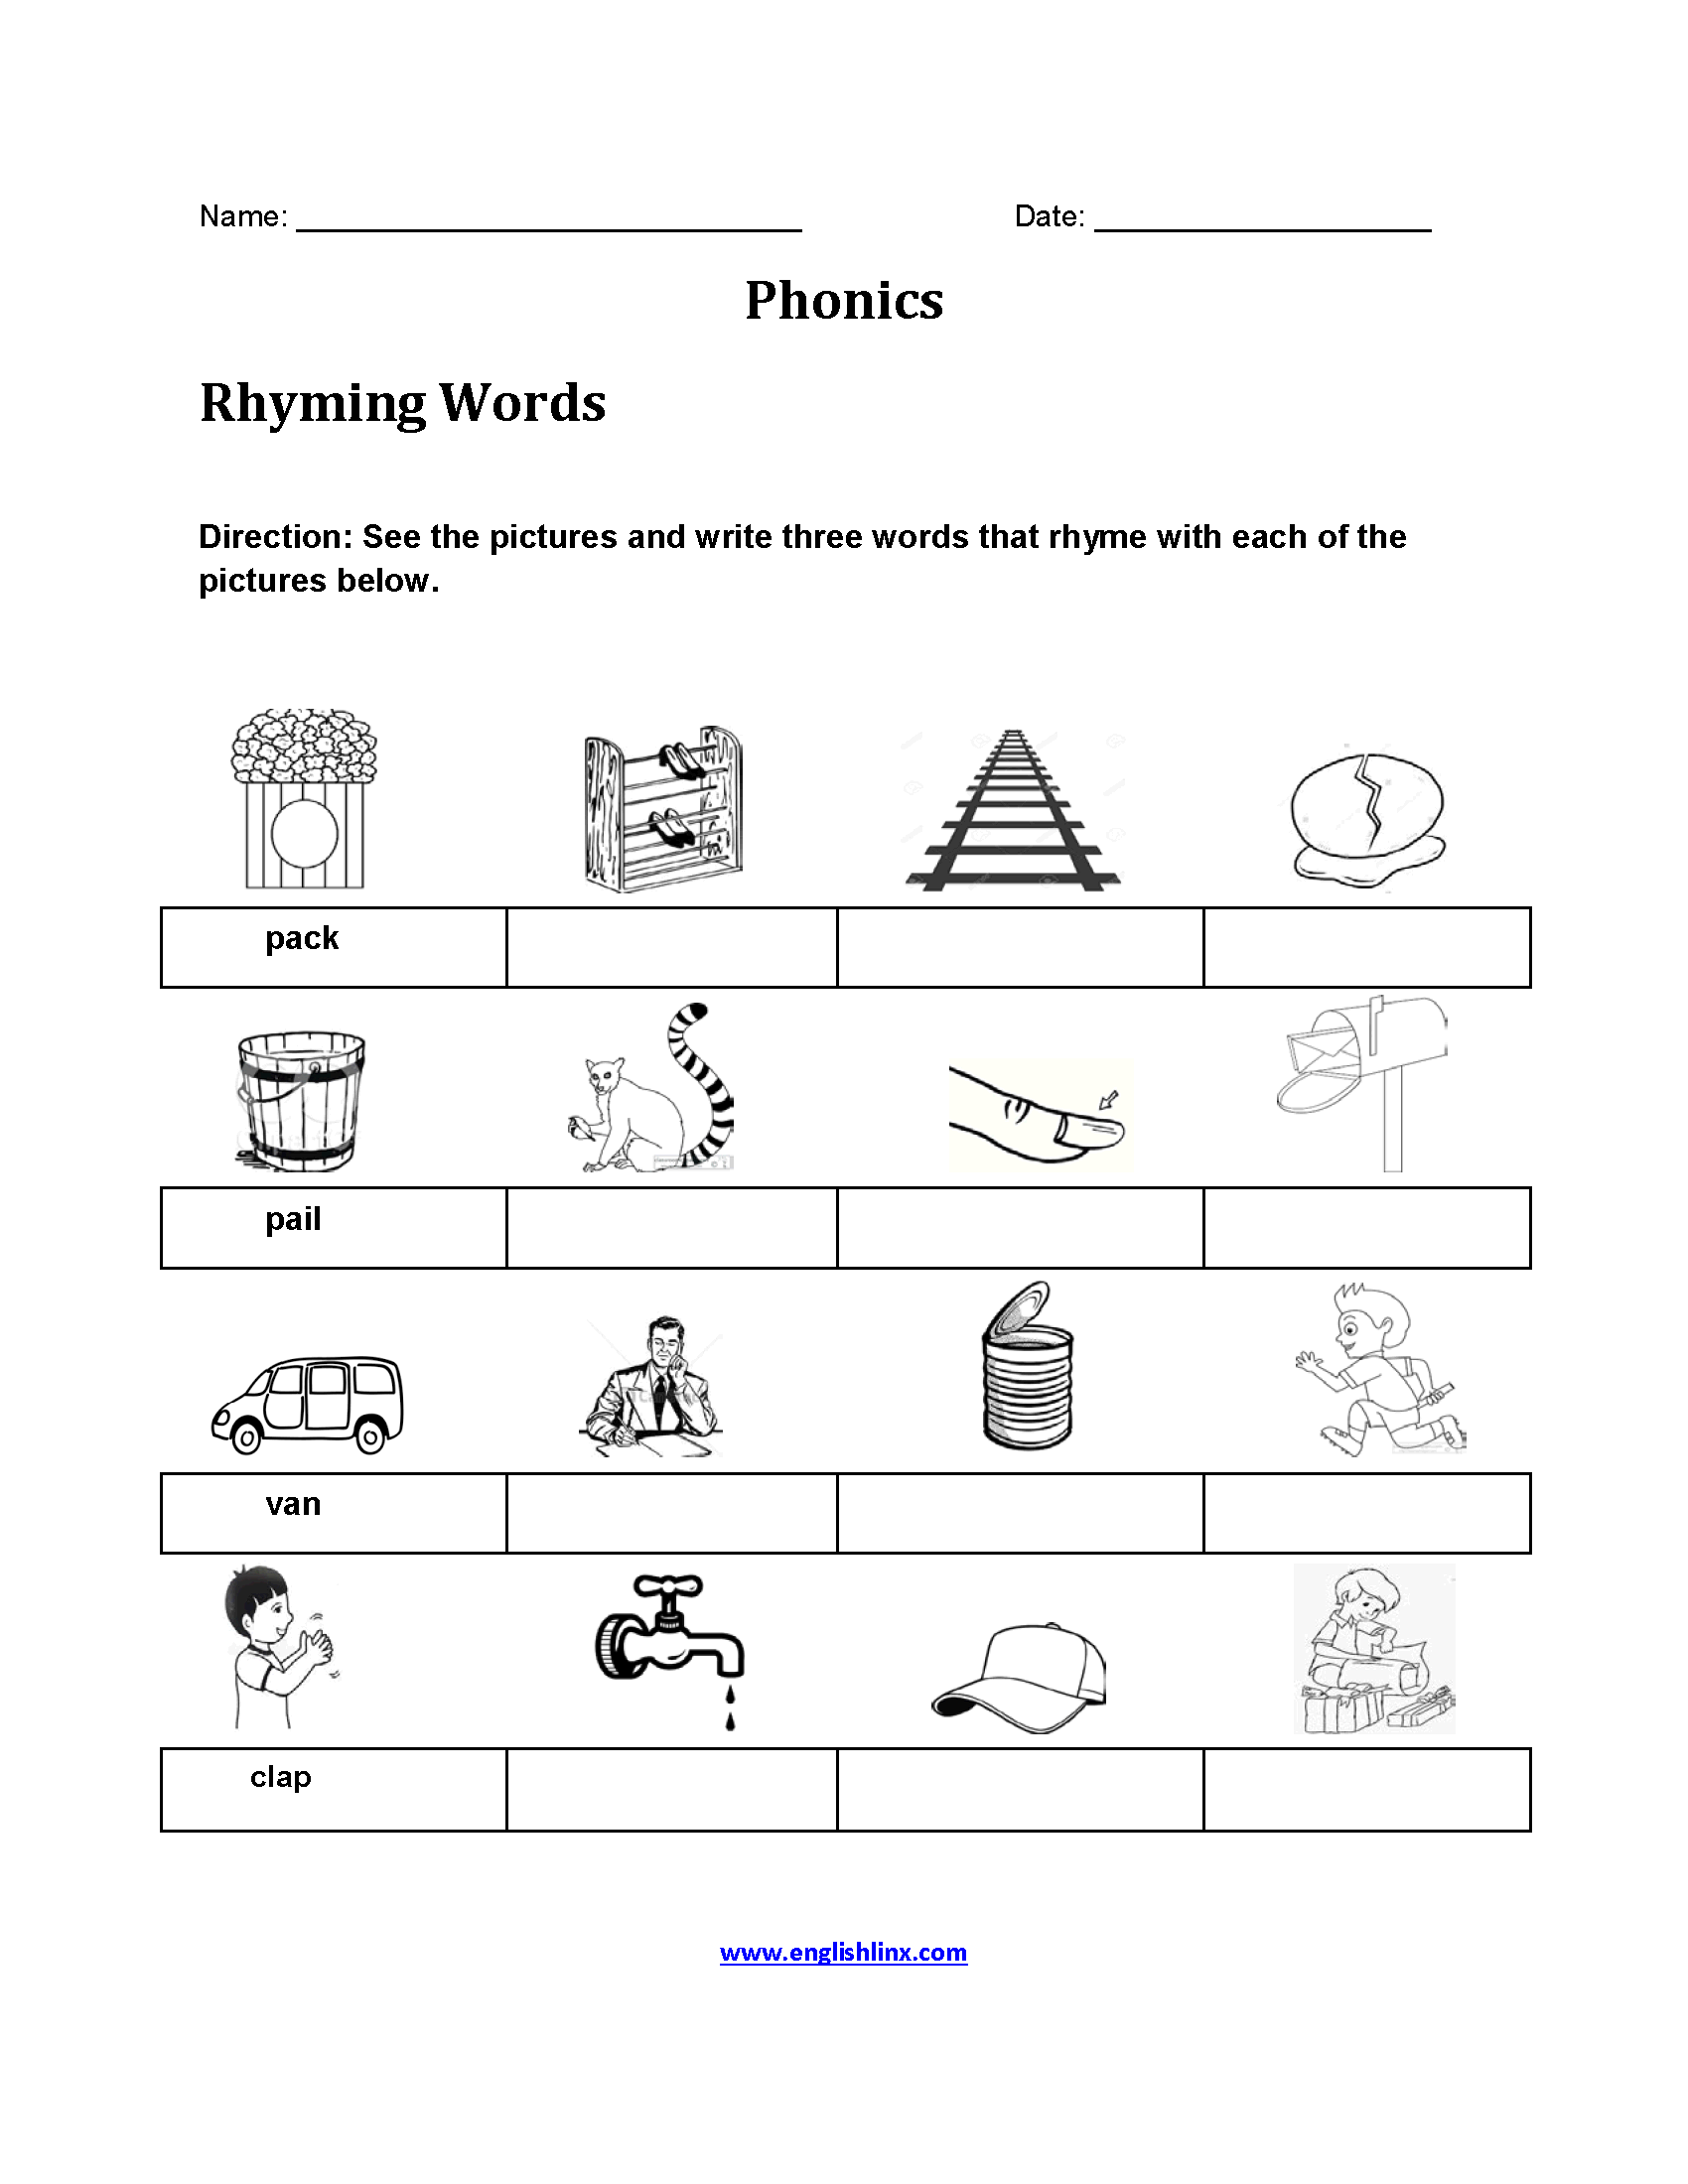 Greetings And Polite Expressions Worksheet